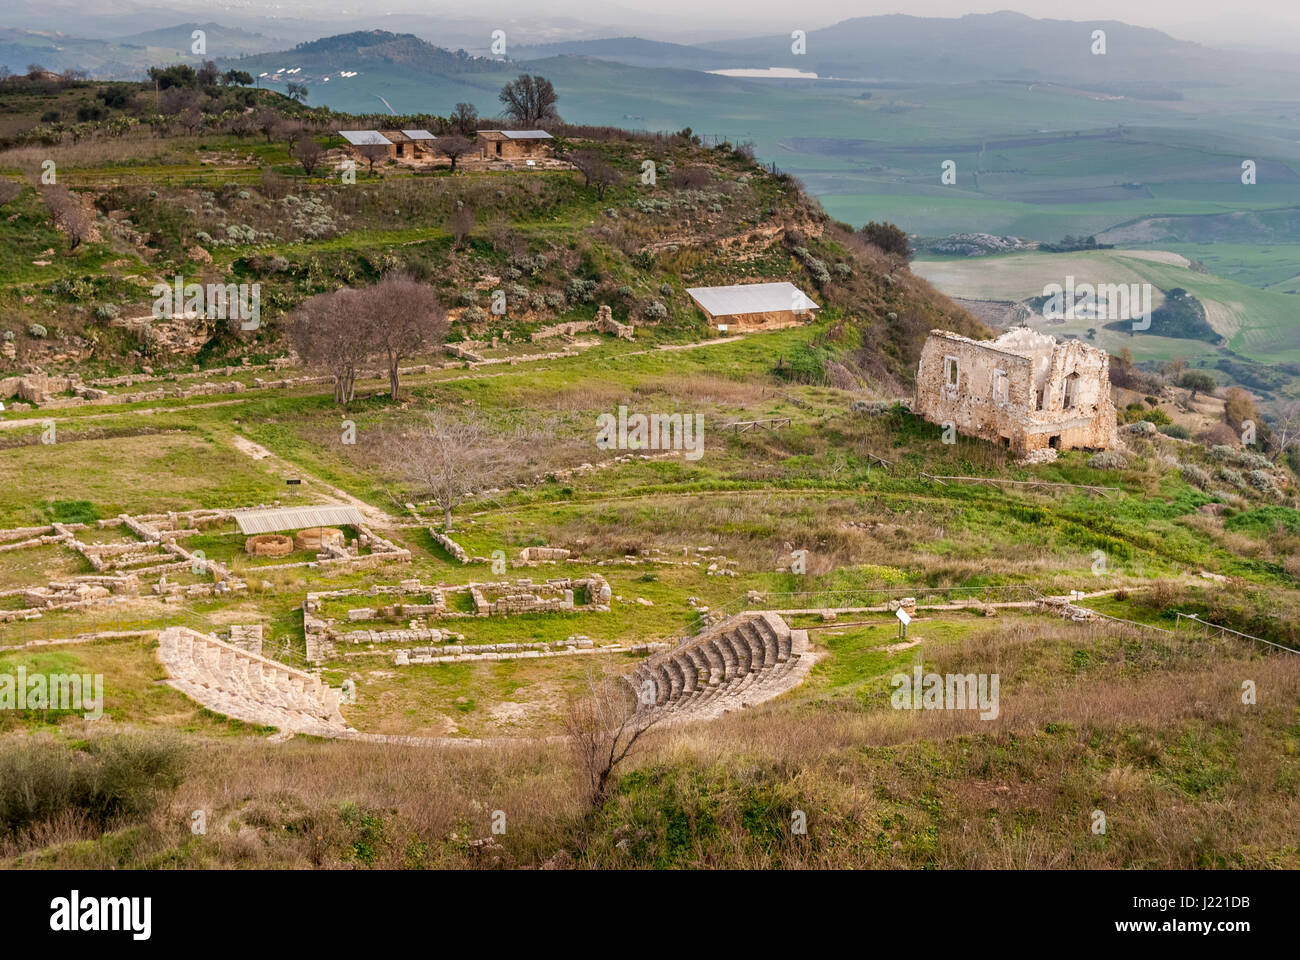 Panoramic view of the ancient greek city of Morgantina, in Sicily - Stock Image